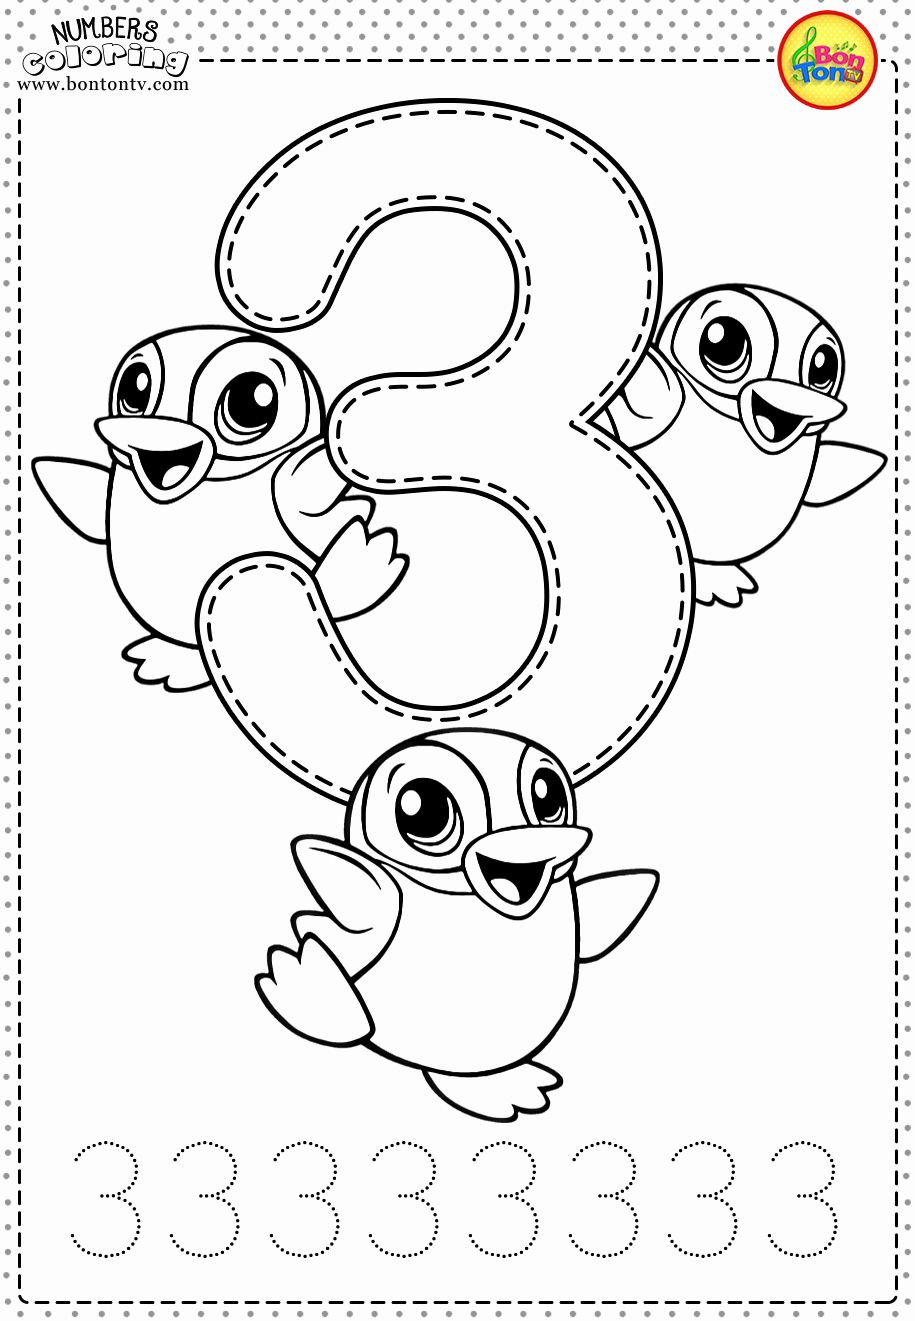 Count By Numbers Coloring Page Lovely Number 3 Preschool Printables Free W Kids Learning Numbers Preschool Worksheets Free Printables Free Preschool Printables